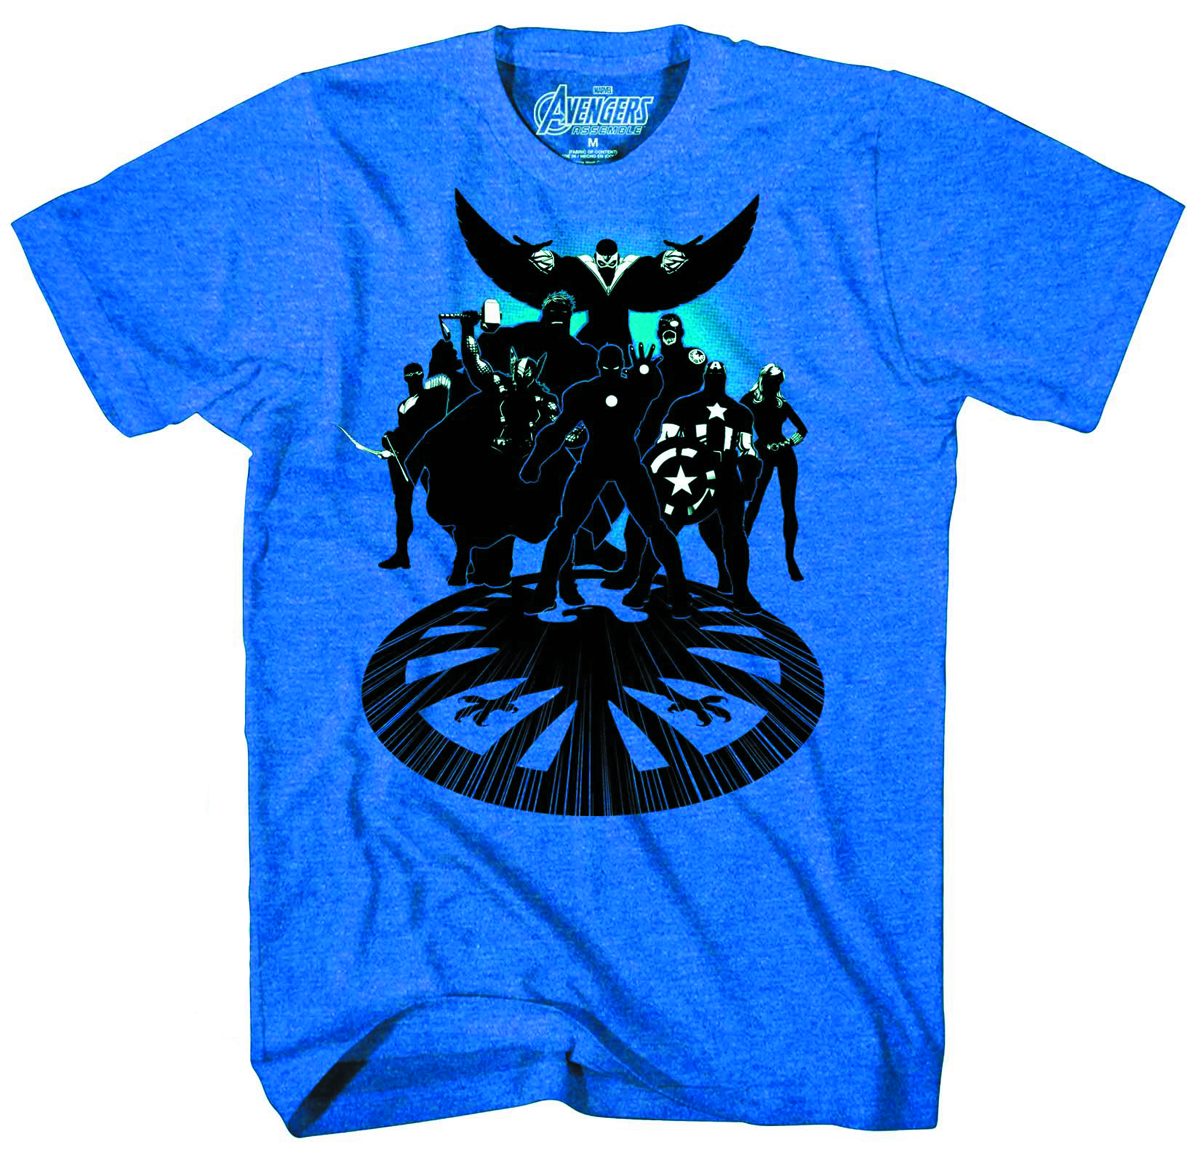 AVENGERS GET SUITED PX BLUE HEATHER T/S SM